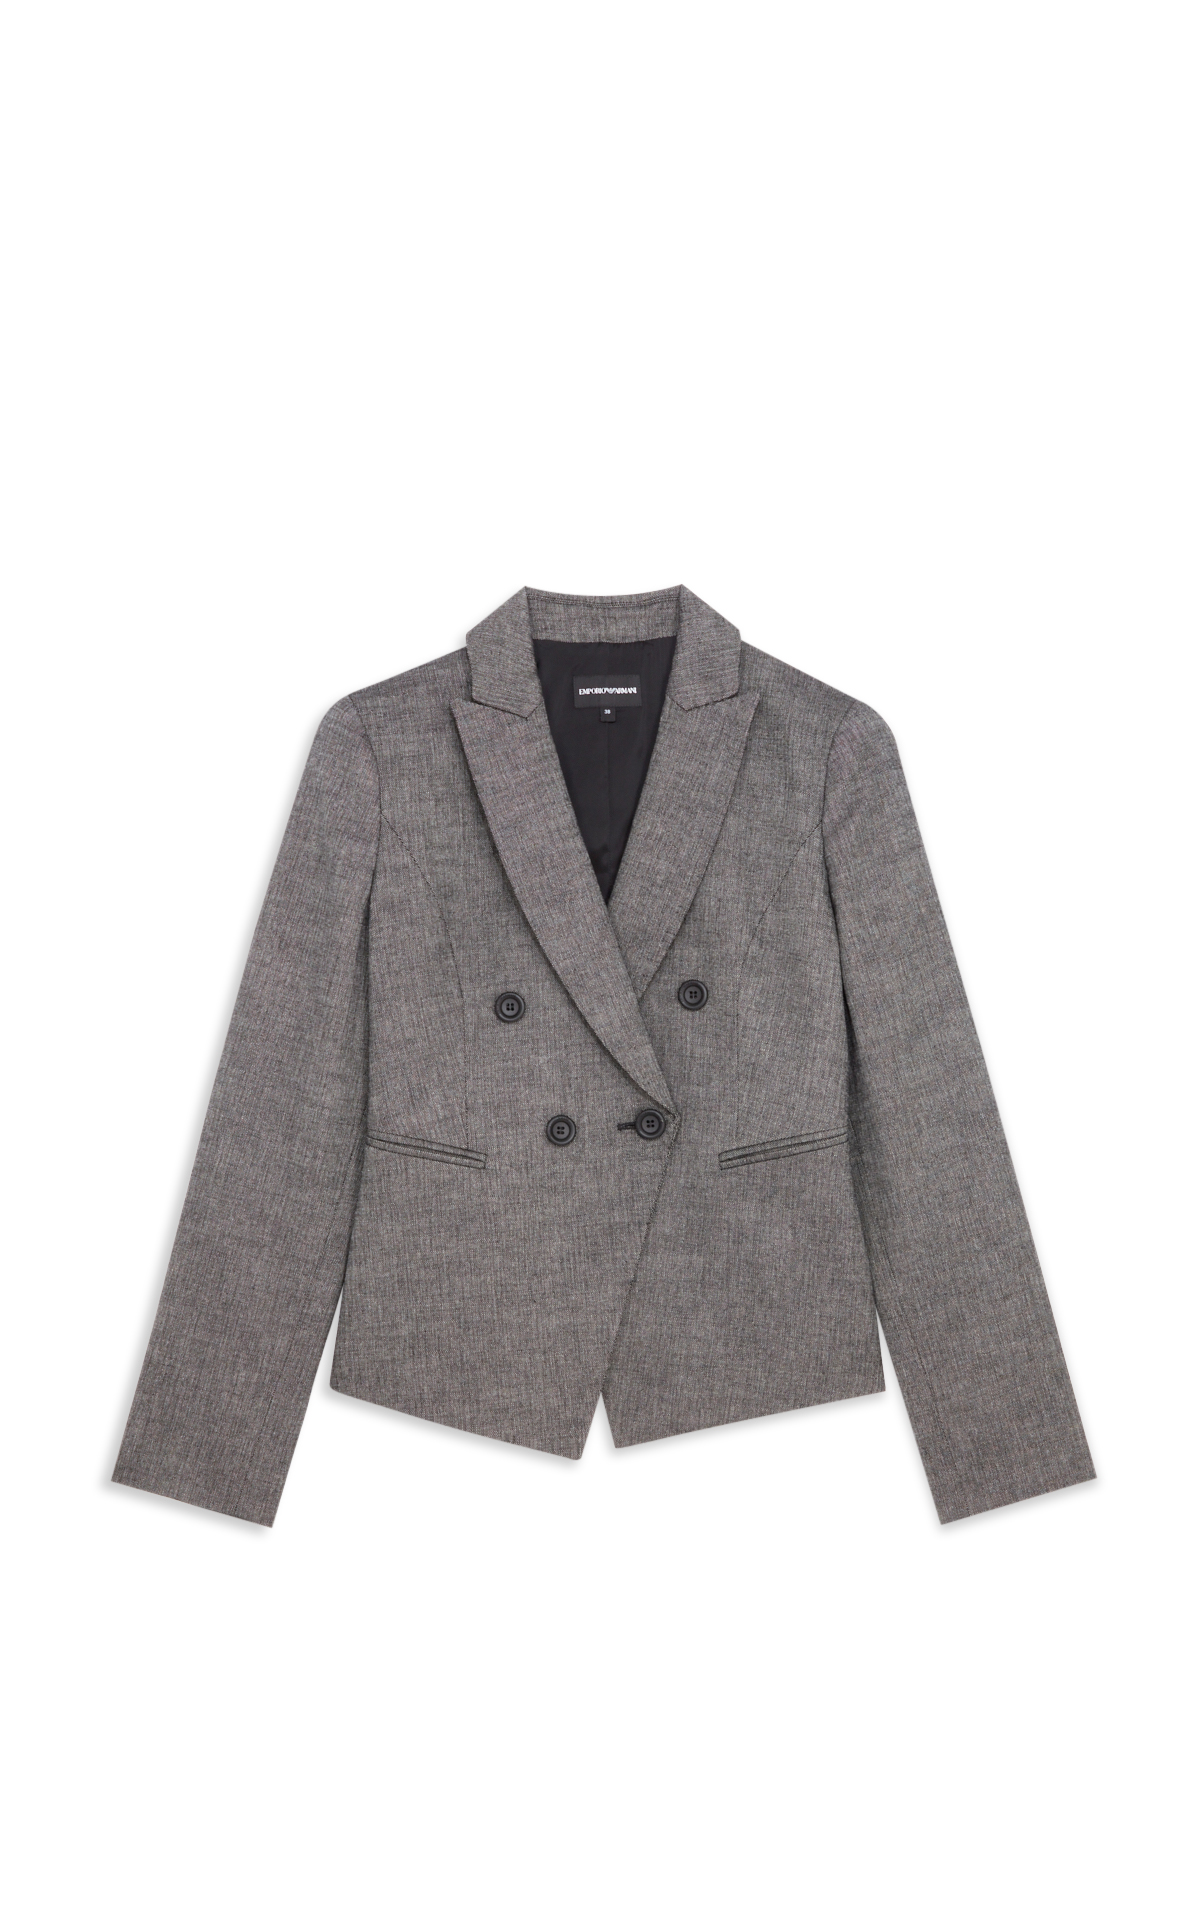 Armani Women's tailored jacket